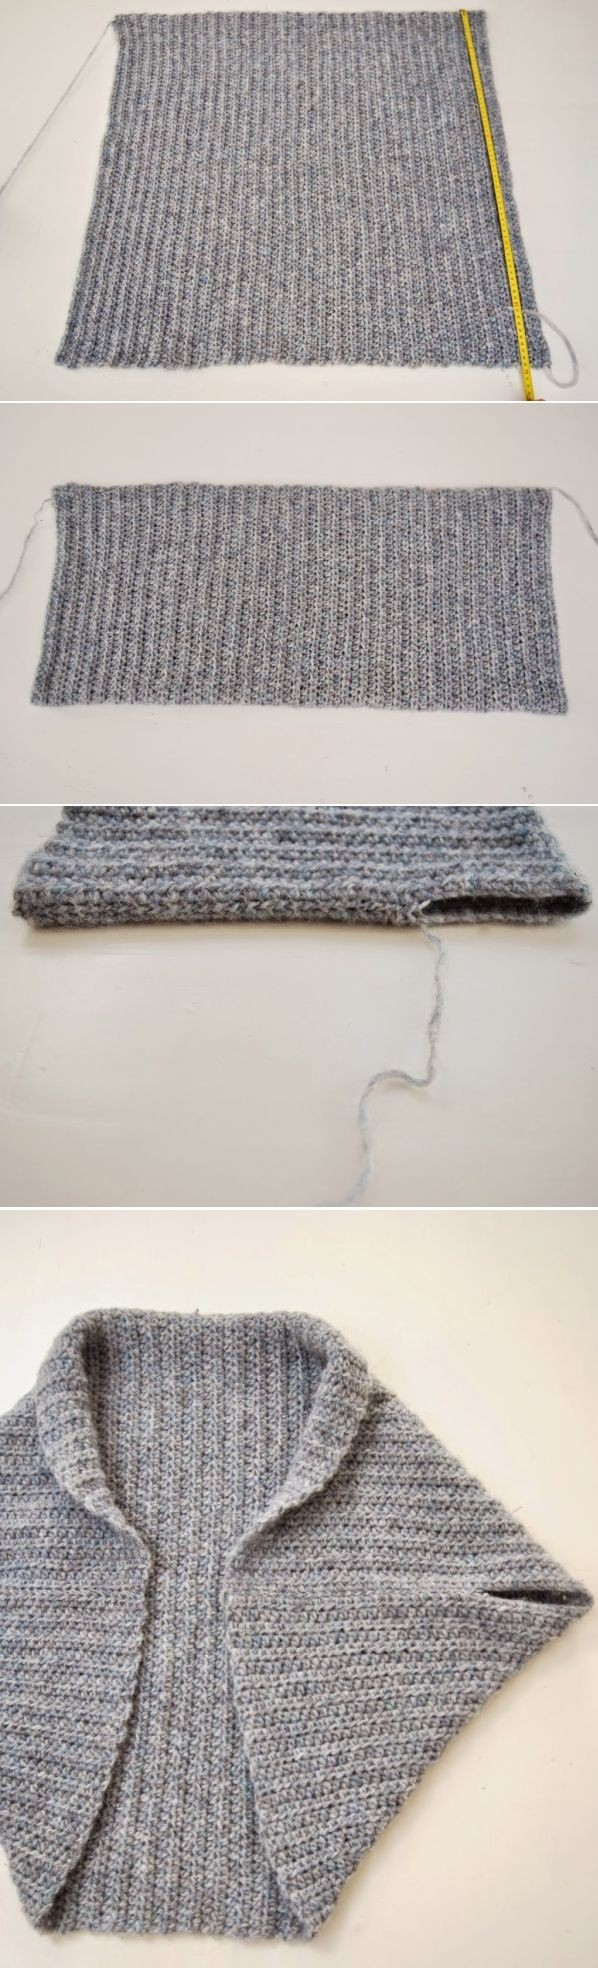 One Piece Fold and Seam Knitting Patterns | In the Loop ...